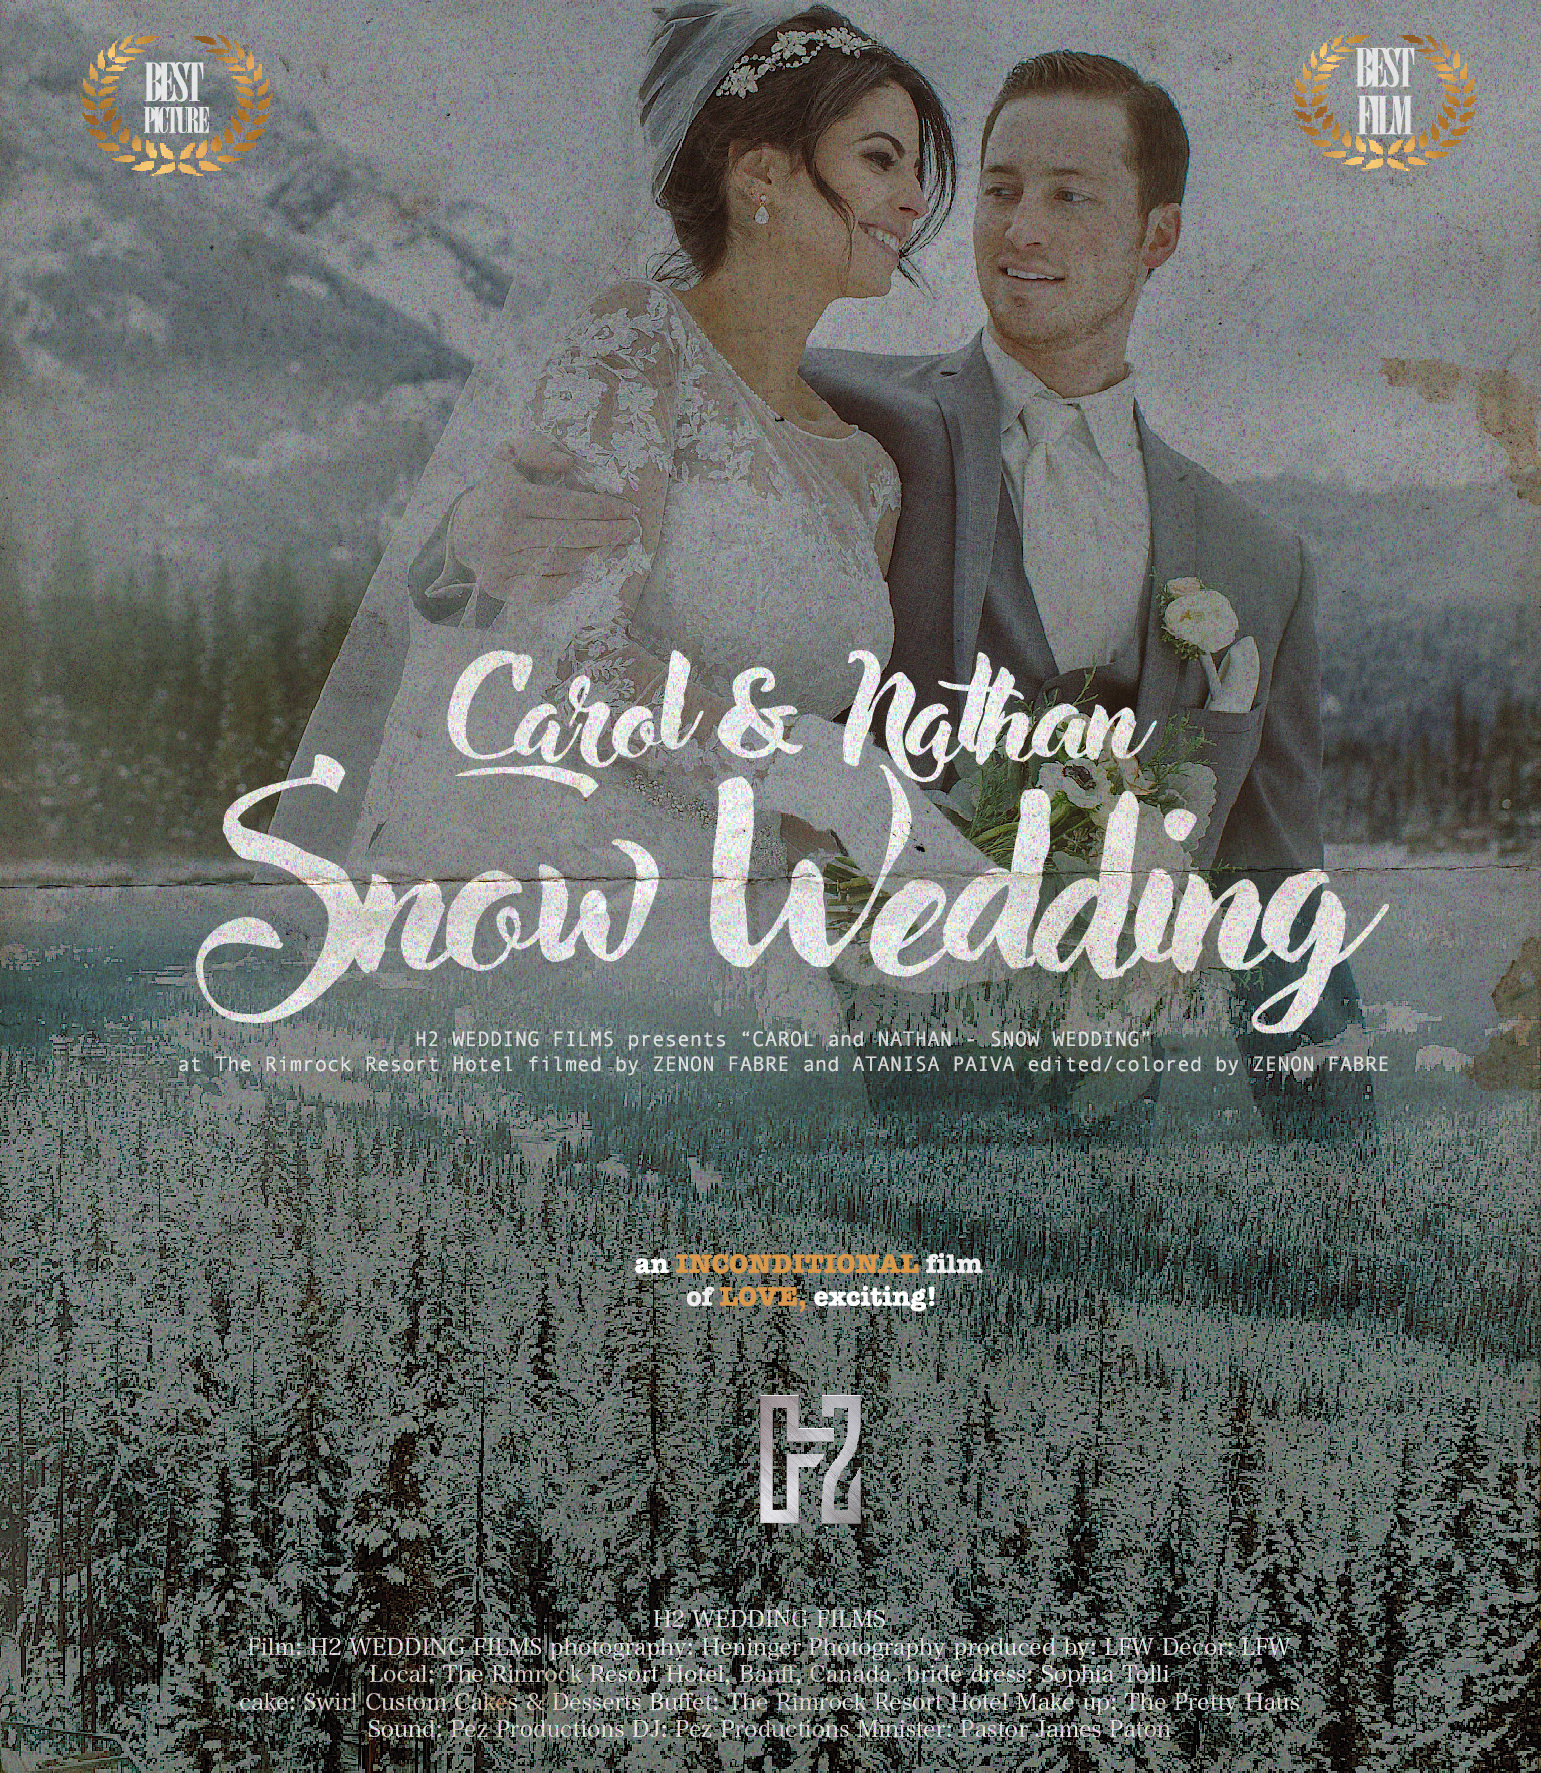 "The Rimrock| Banff|Canada - H2 WEDDING FILMS presents CAROLINA SKEPIS and NATHAN JONES in ""THE WEDDING FILM"" cinematography by ZENON FABRE and ATANISA PAIVA photography by HENINGER PHOTOGRAPHY produced by: LFW Decor: LFW bride dress: SOPHIA TOLLI cake: SWIRL CUSTOM CAKES & DESSERTS Buffet: The Rimrock Resort Hotel Make up: THE PRETTY HAUS Sound and DJ: PEZ PRODUCTIONS Minister: JAMES PATON  directed and edited by ZENON FABRE filmed on location at THE RIMROCK RESORT HOTEL - BANFF, CANADA"